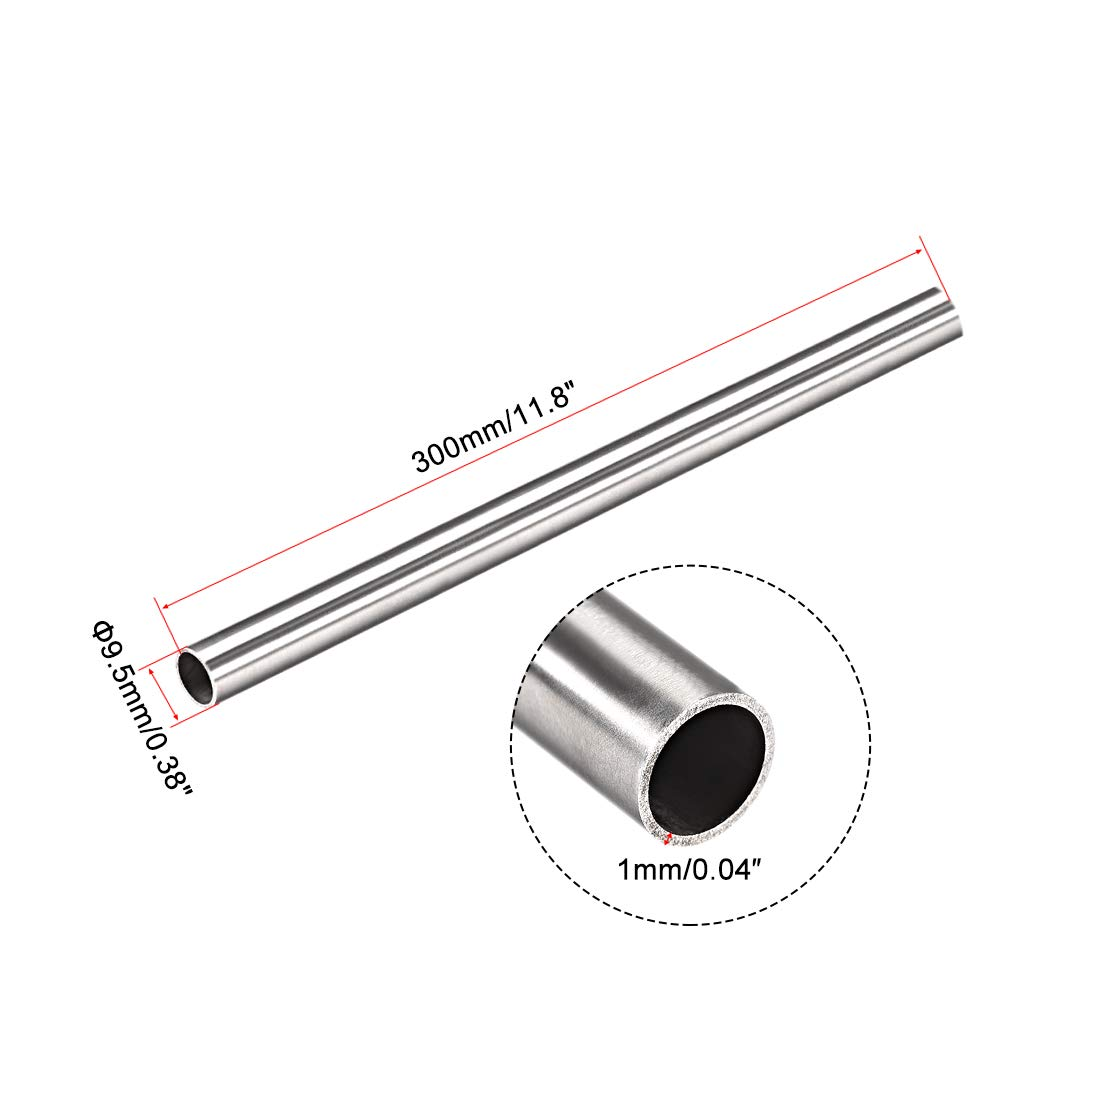 uxcell 4Pcs 304 Stainless Steel Capillary Tube Tubing 7.5mm ID 9.5mm OD 300mm Length 1mm Wall